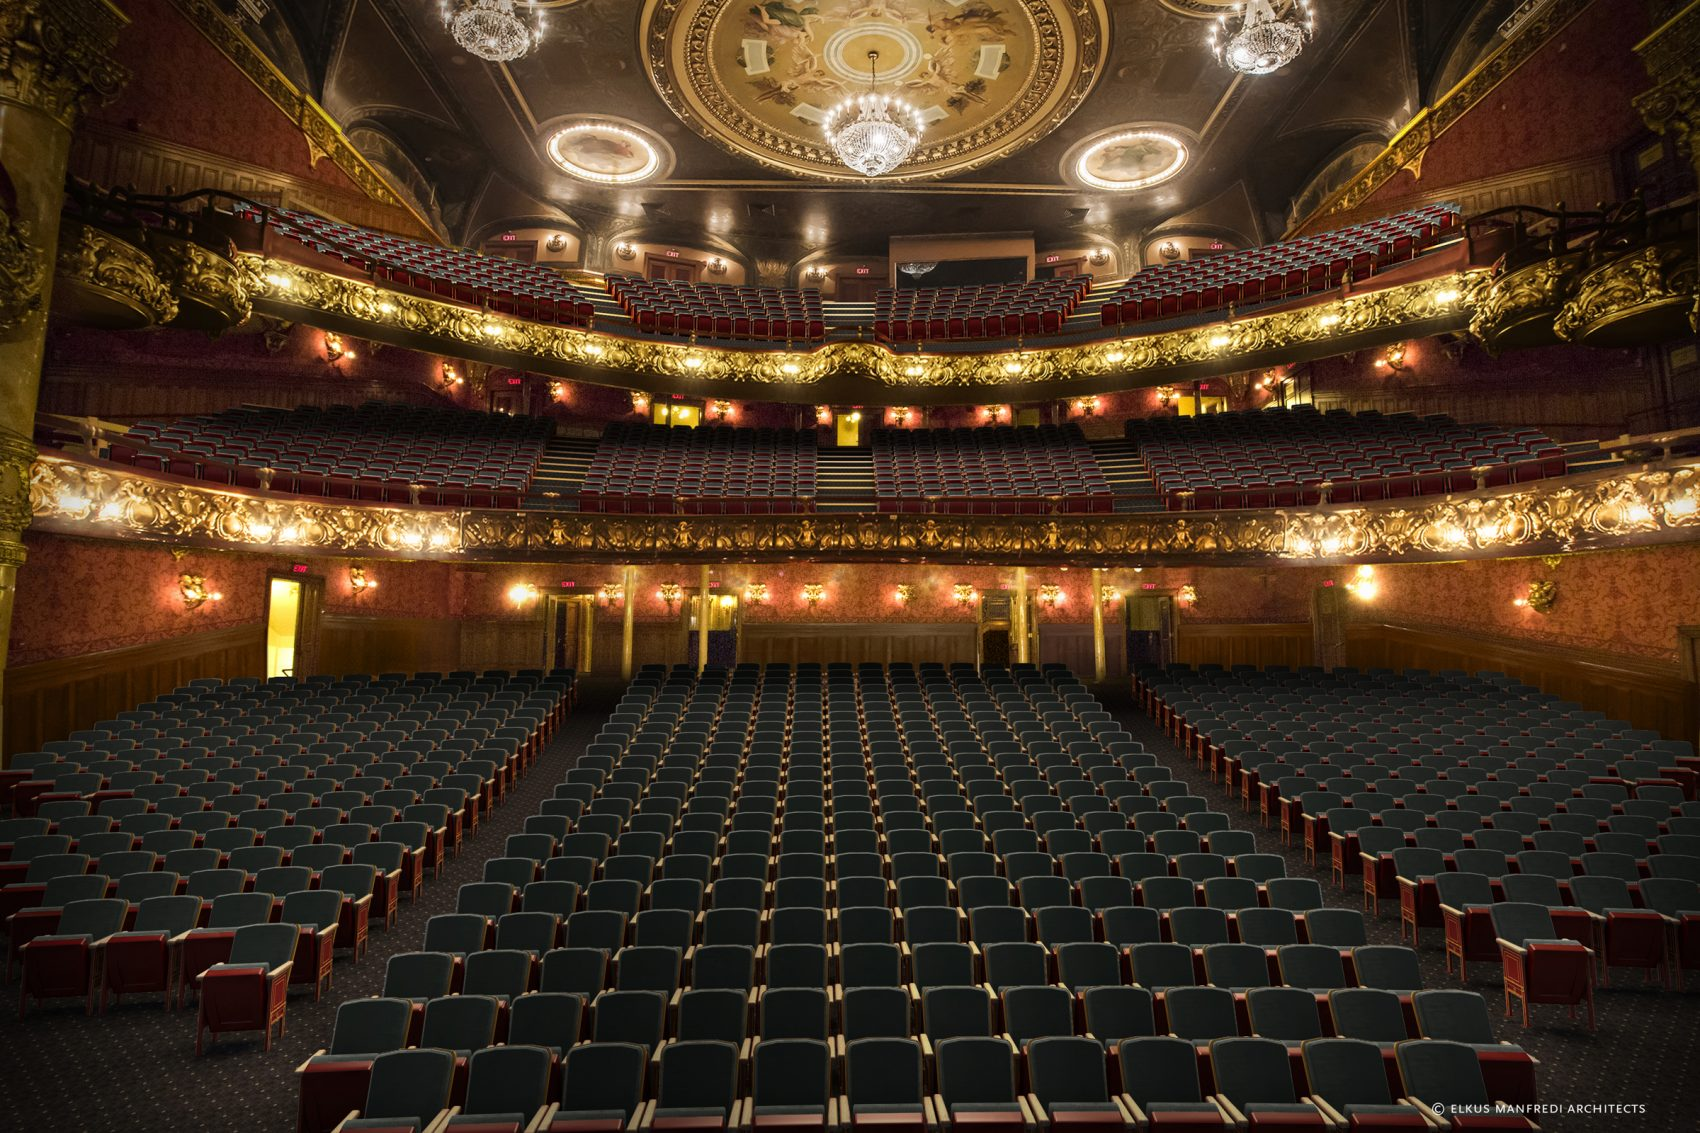 A rendering of what the Colonial Theatre will look like after renovations. (Courtesy Elkus Manfredi Architects)